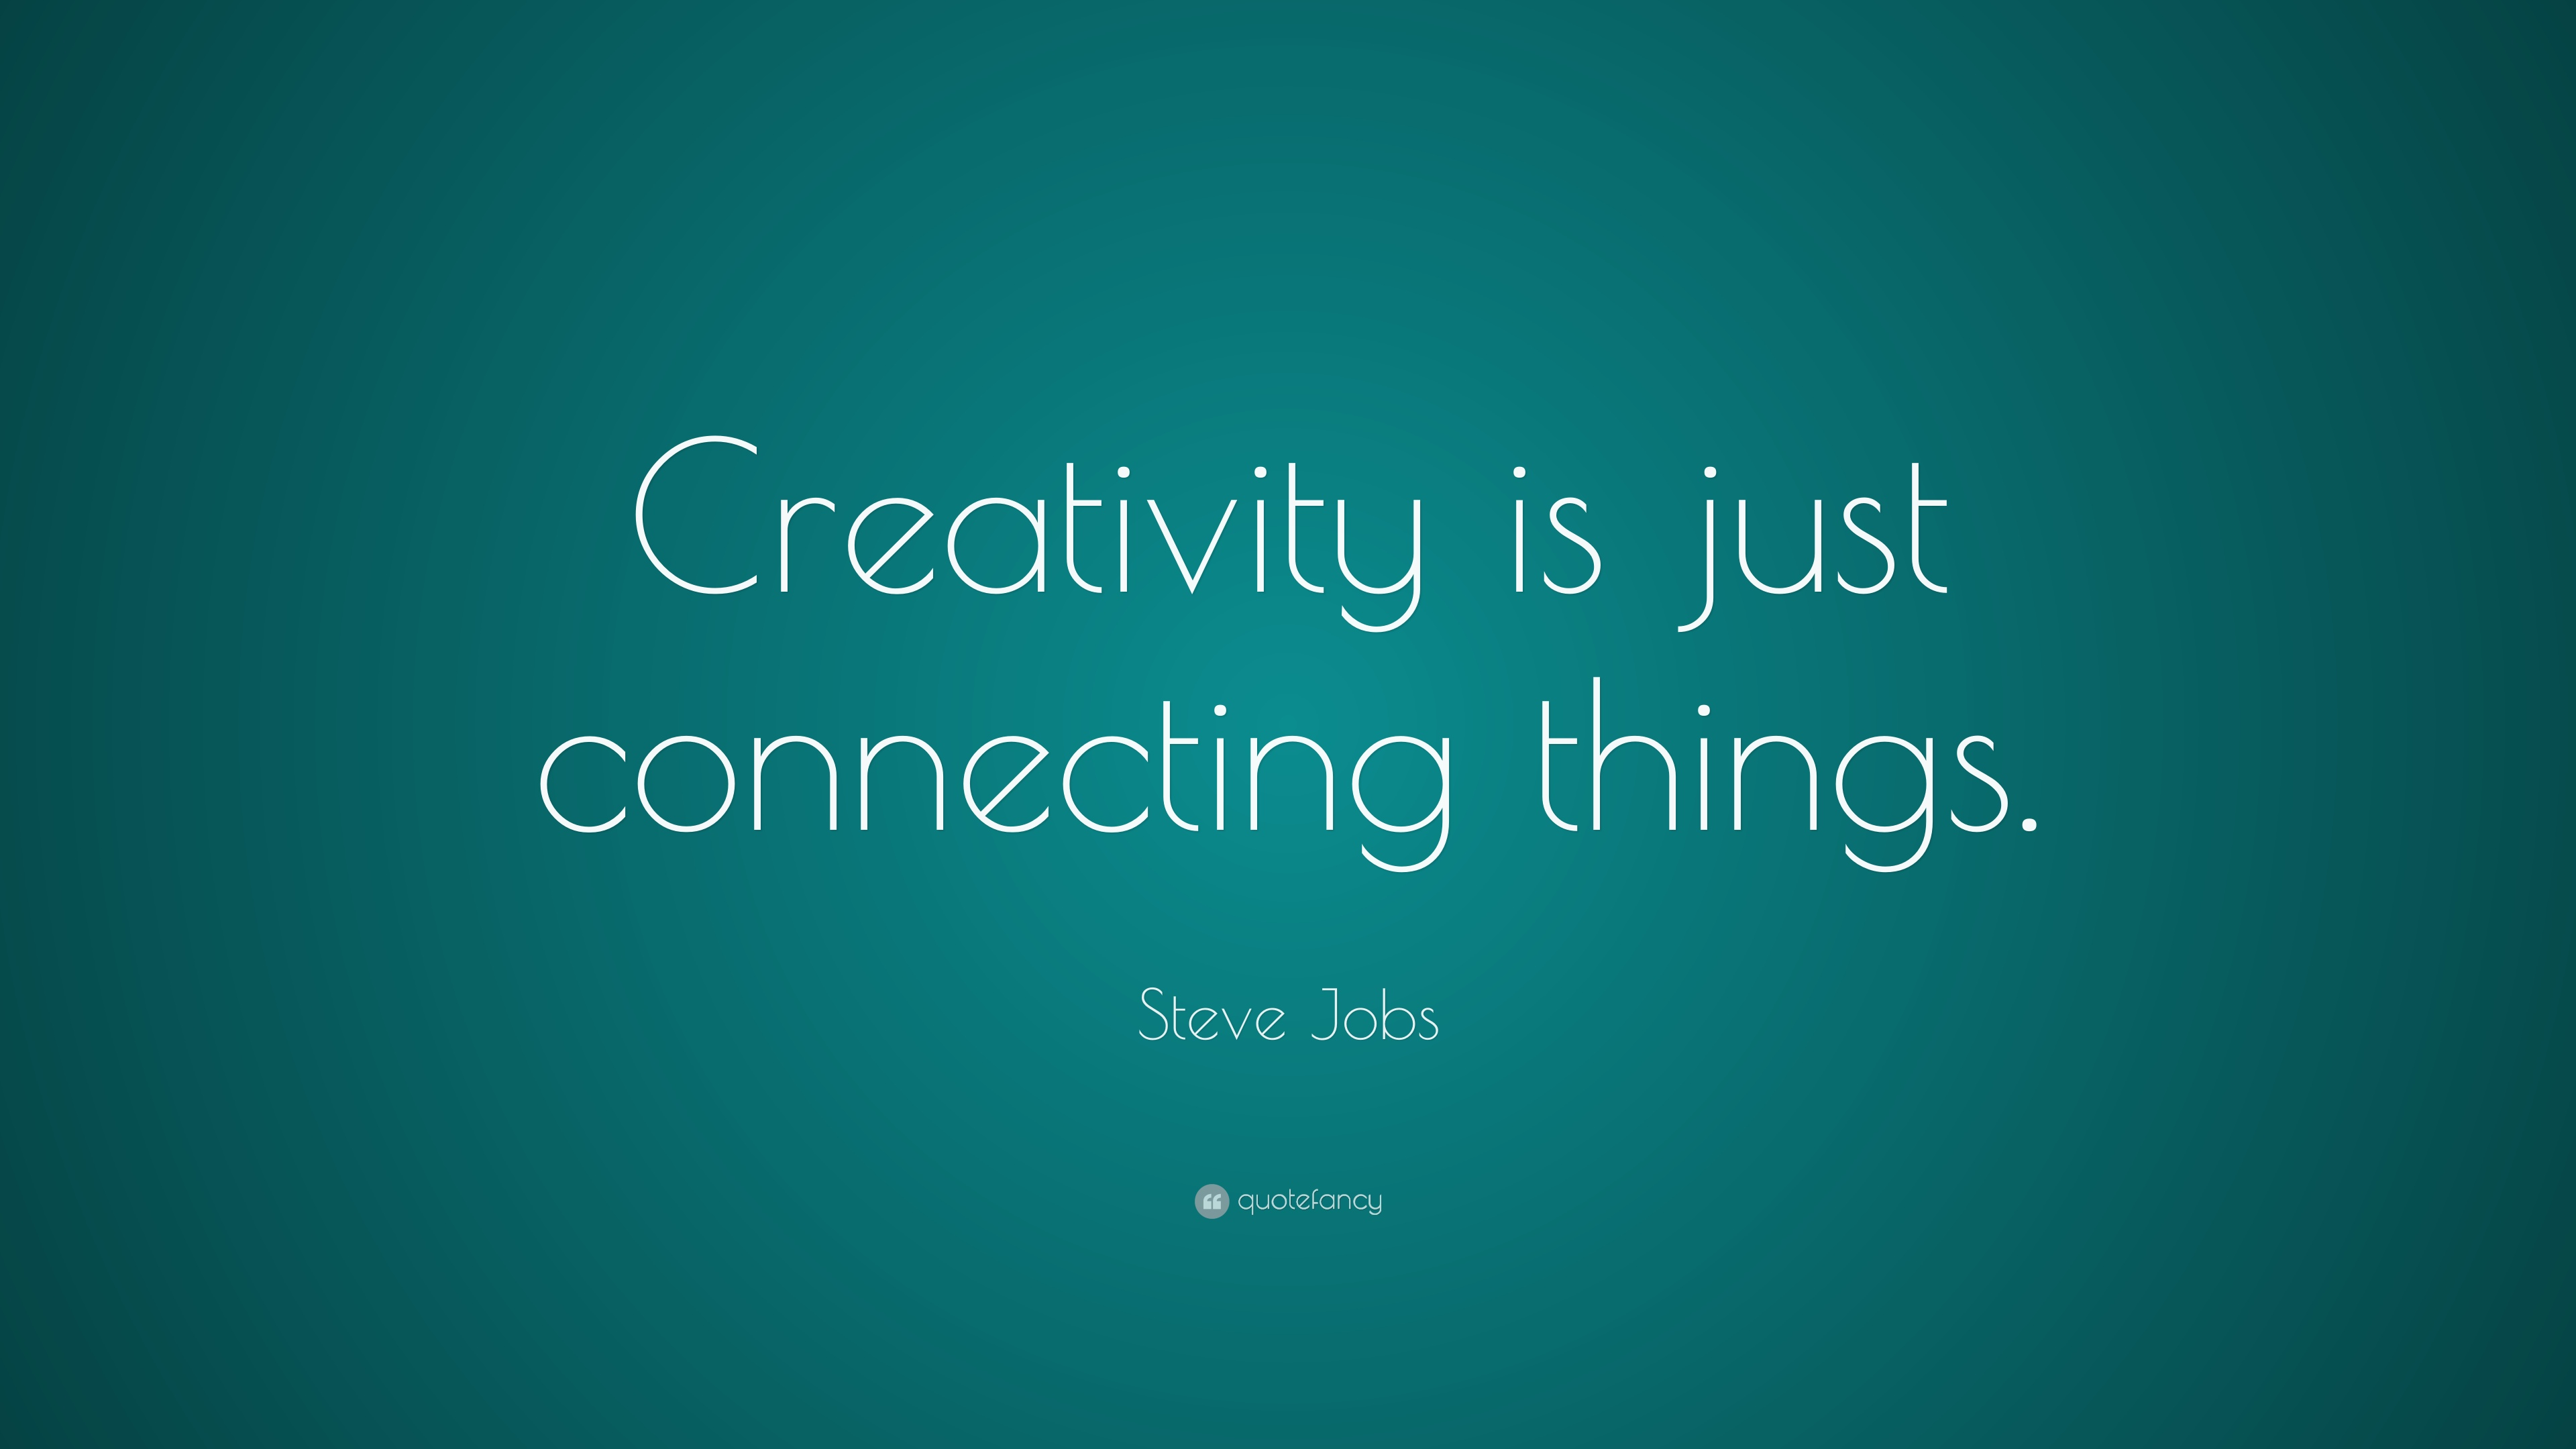 Creativity Quotes (57 wallpapers) - Quotefancy